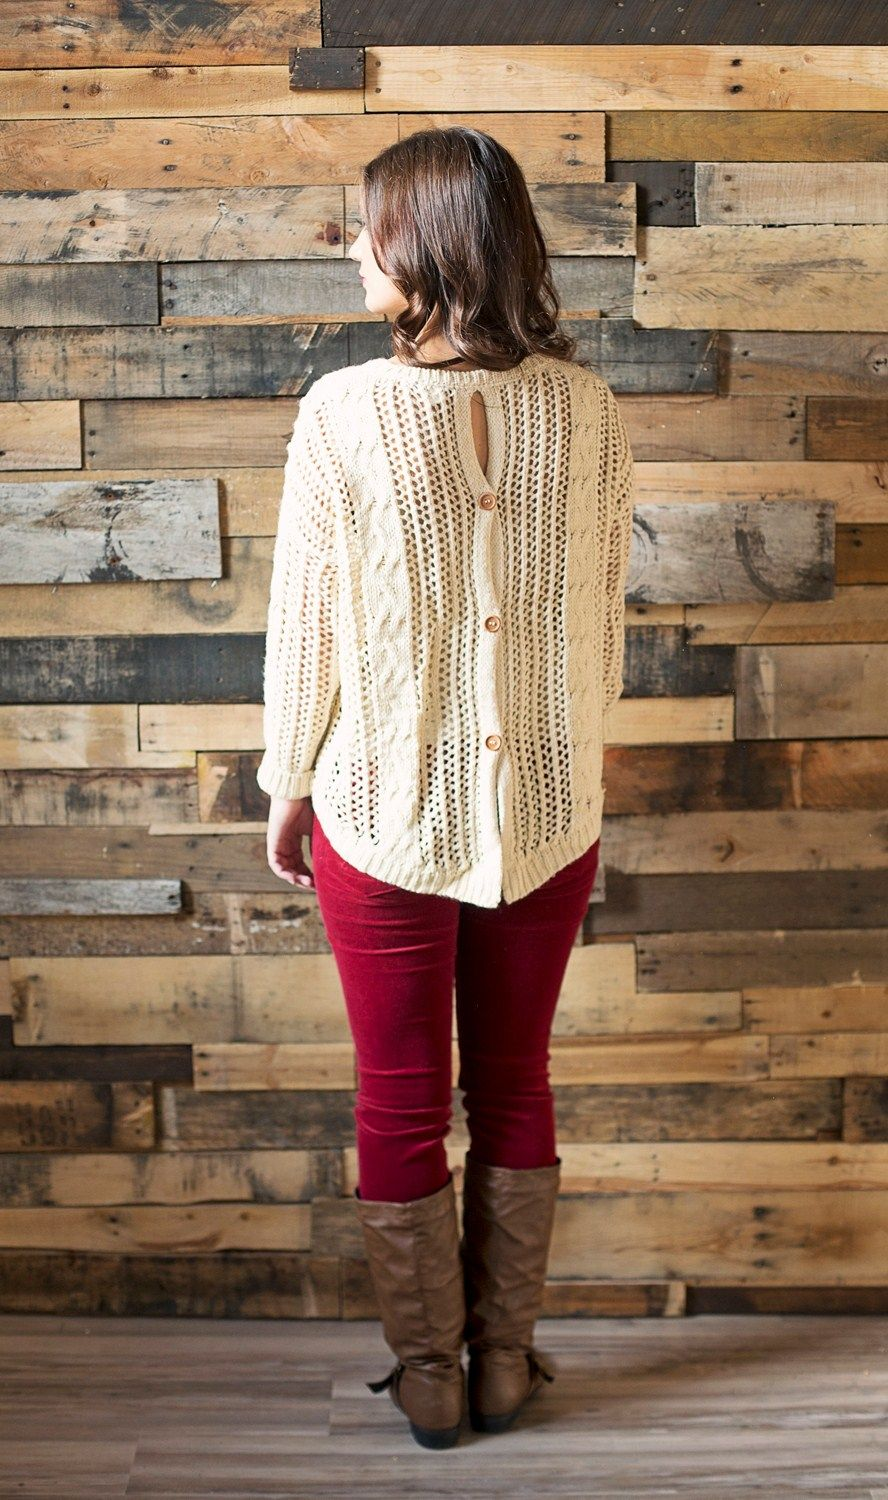 Cute As A Button Sweater | Cream cable knit sweater with large ...